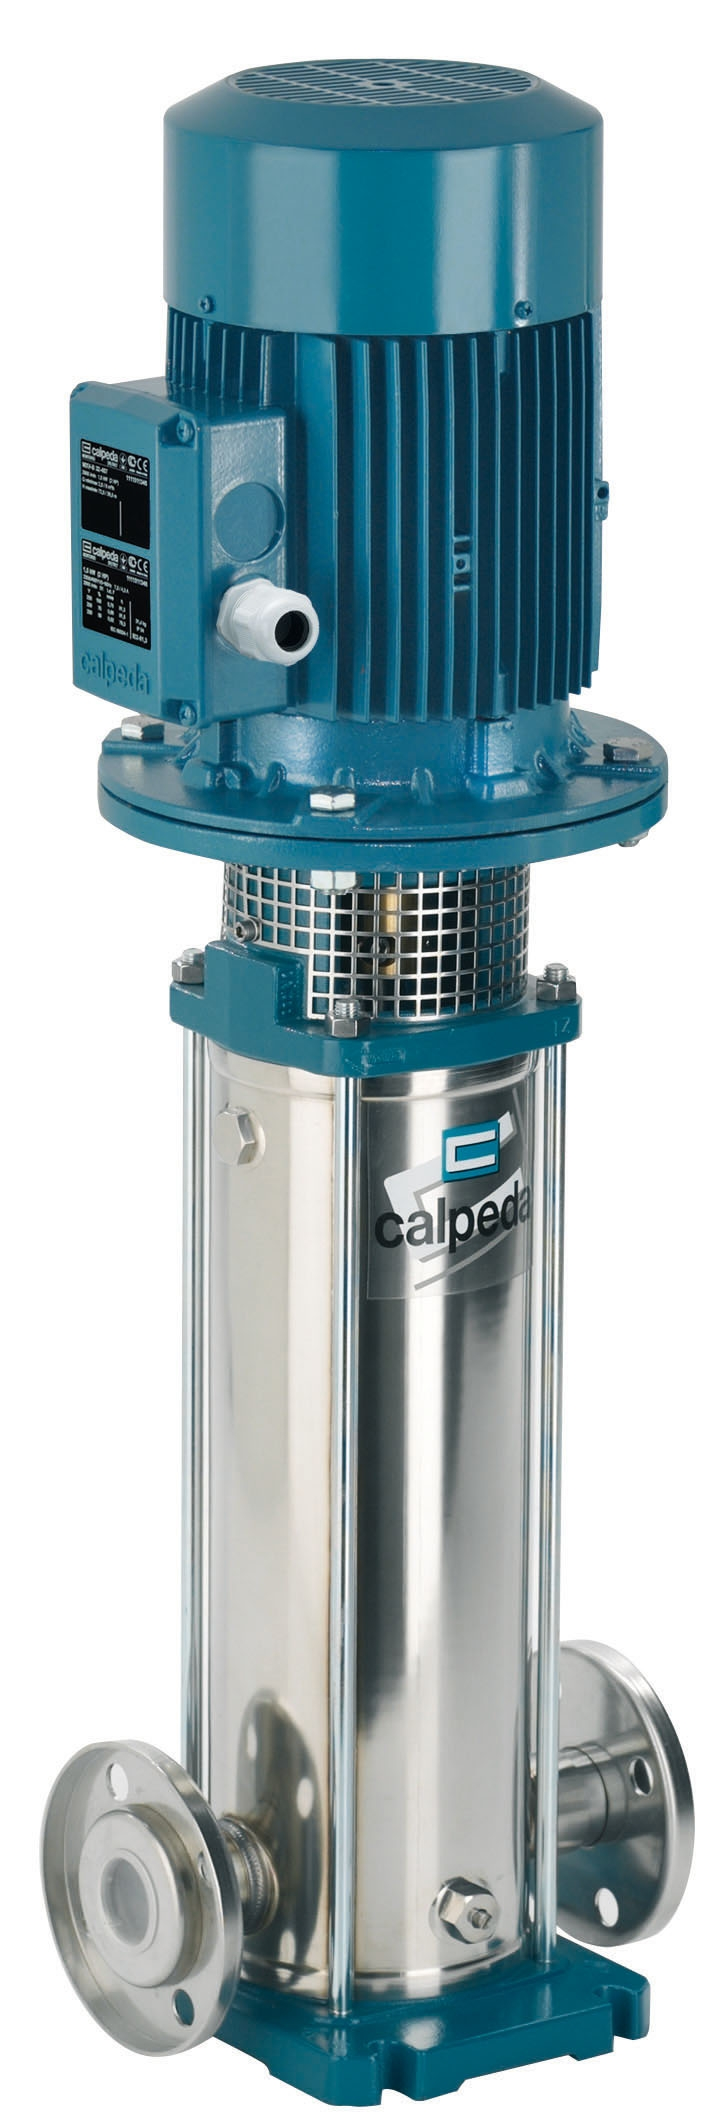 Calpeda MXV 65 Vertical Multistage Pump (3 Phase)